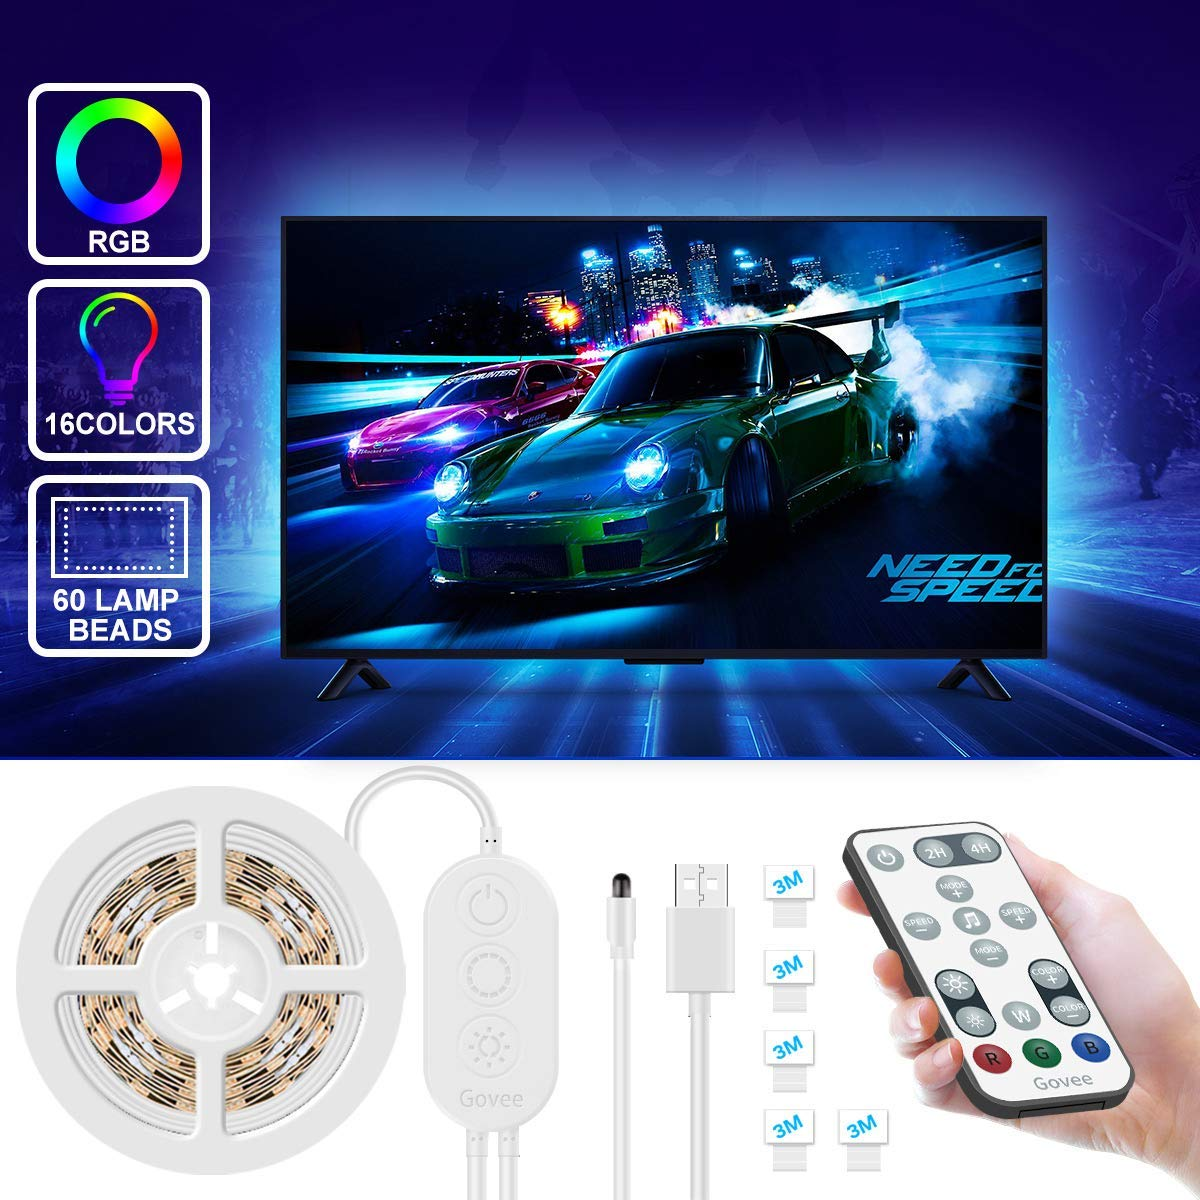 LED TV Backlight 2M, Govee LED Strip Lights for TV USB Powered